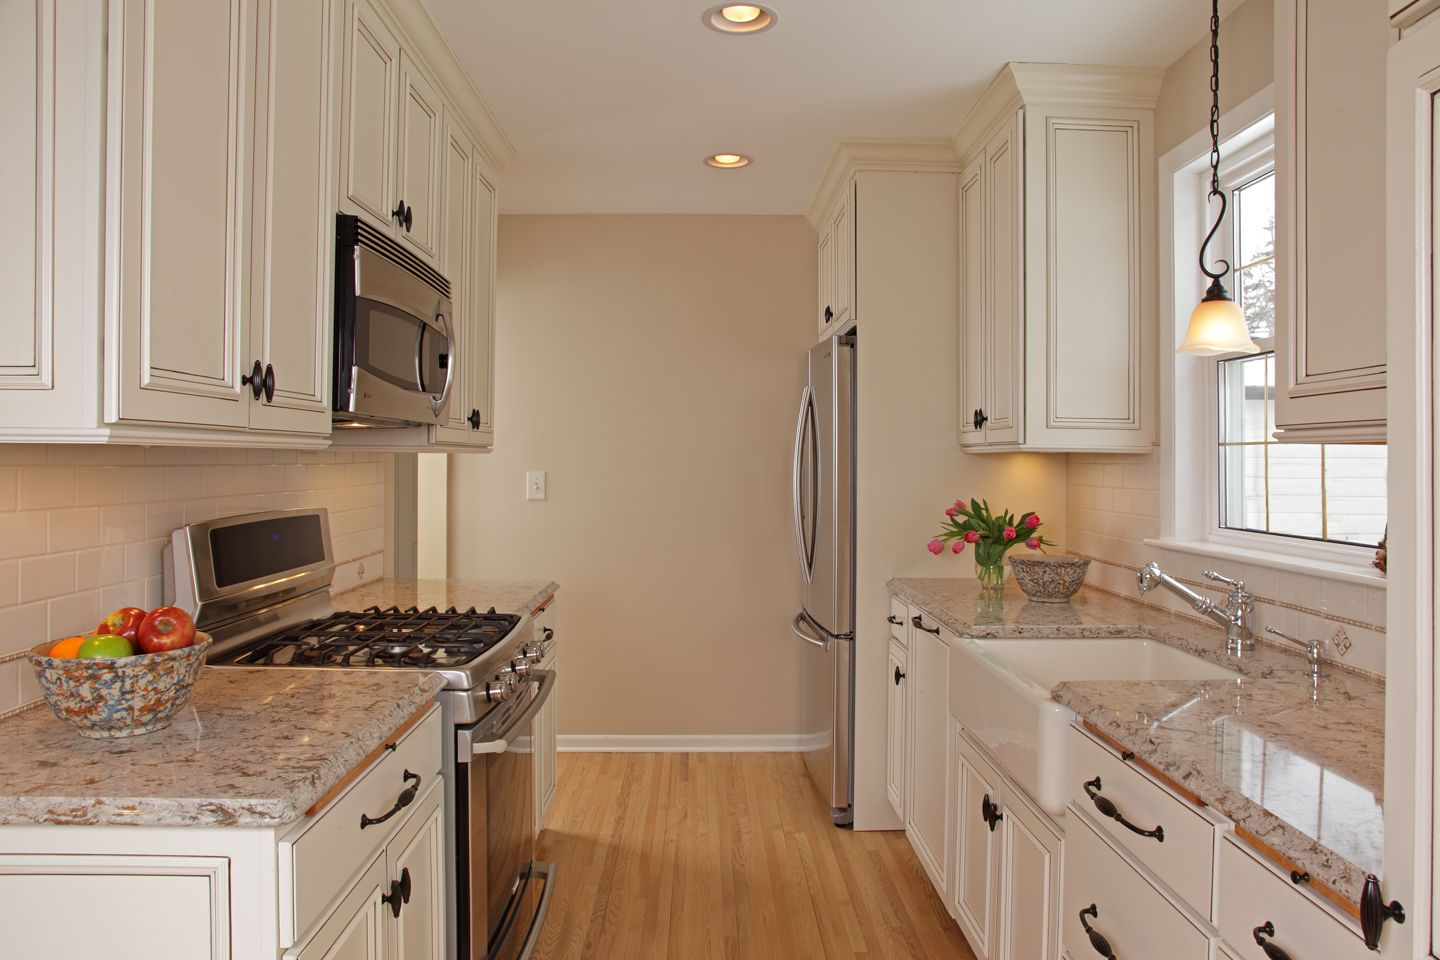 Stainless Steel Cabinets And Countertops Farmhouse Kitchen Sink Granite Countertops White